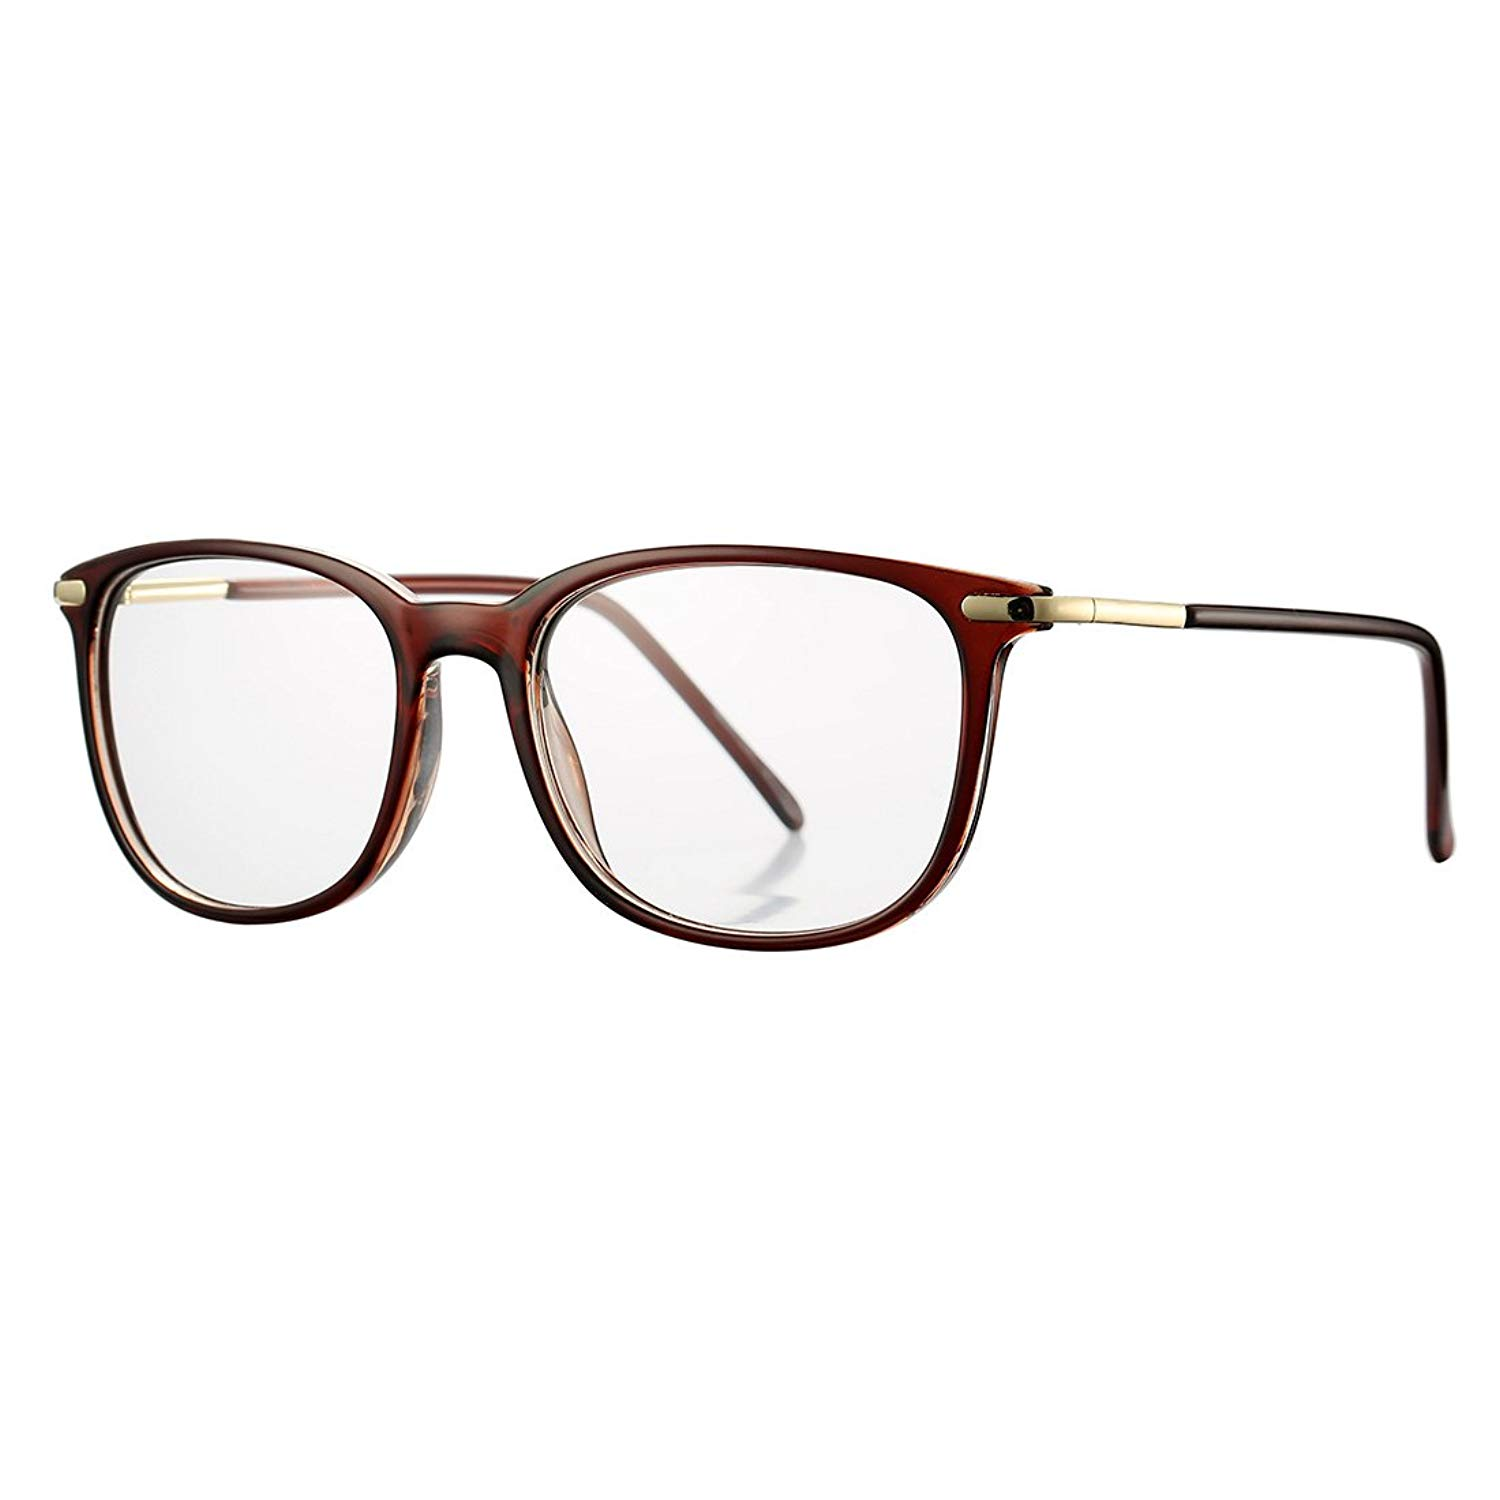 656bc5b31380 Get Quotations · Non-prescription Horn Rimmed Clear Lens Hipster Eye Glasses  Frame Metal Temple OpticaL Eyewear(